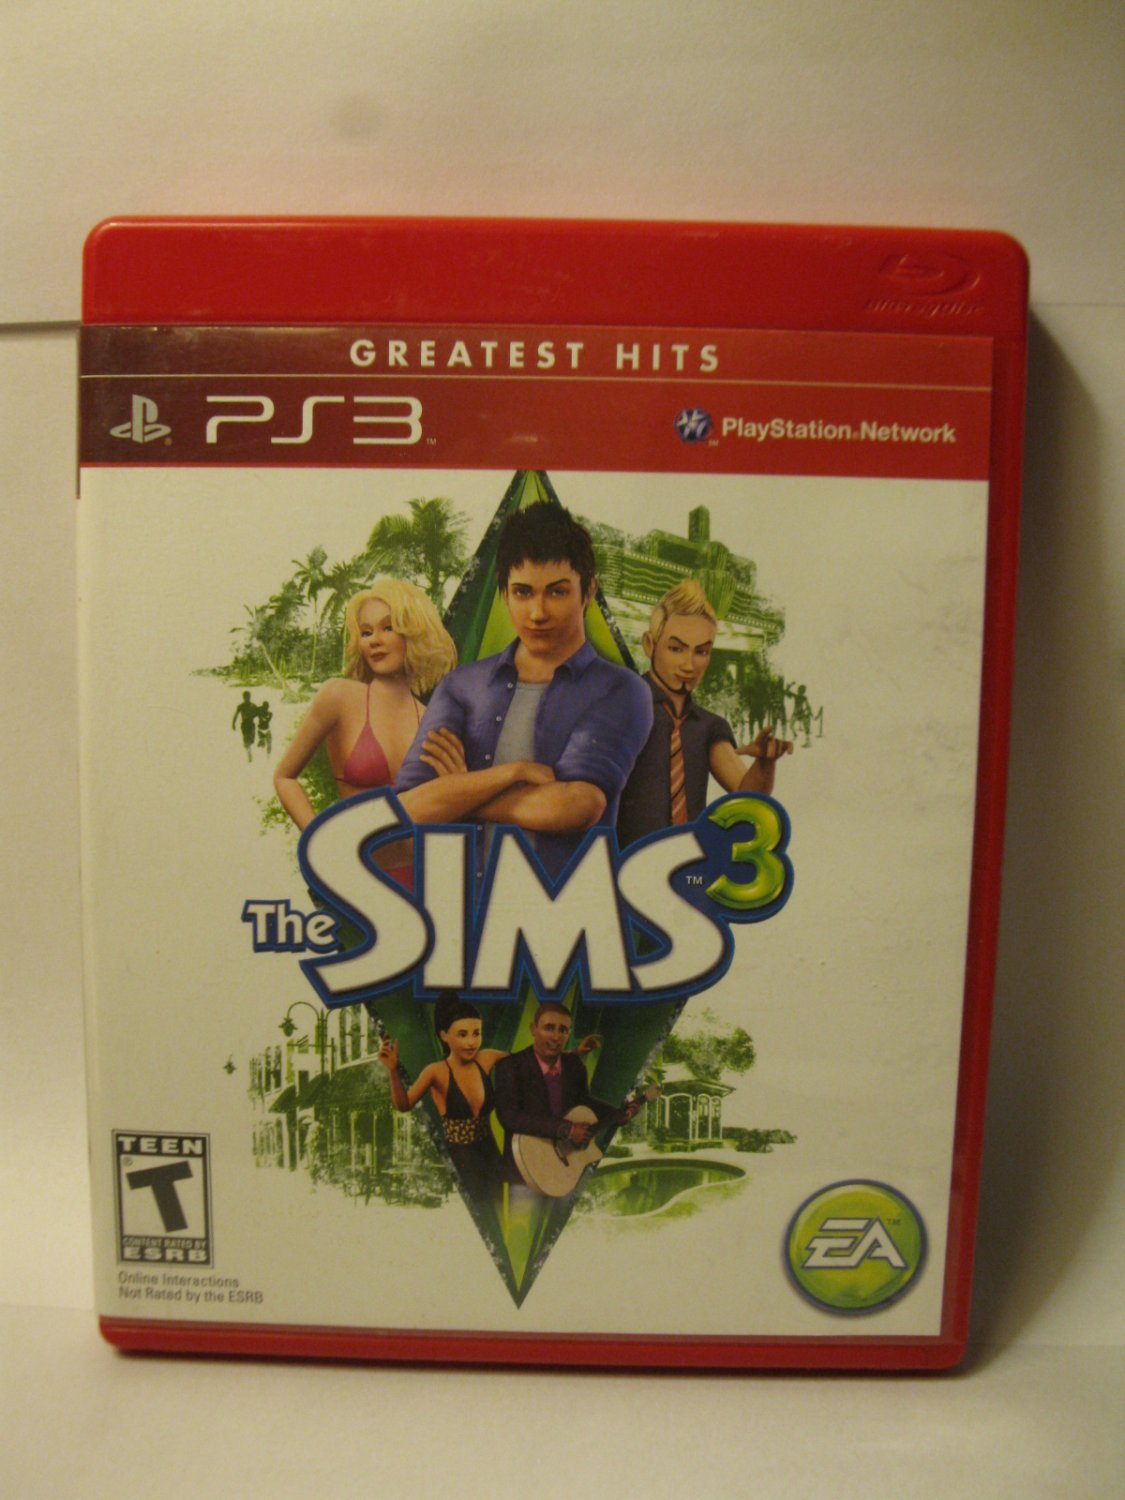 Playstation 3 / PS3 Video Game: The Sims 3 - Greatest Hits